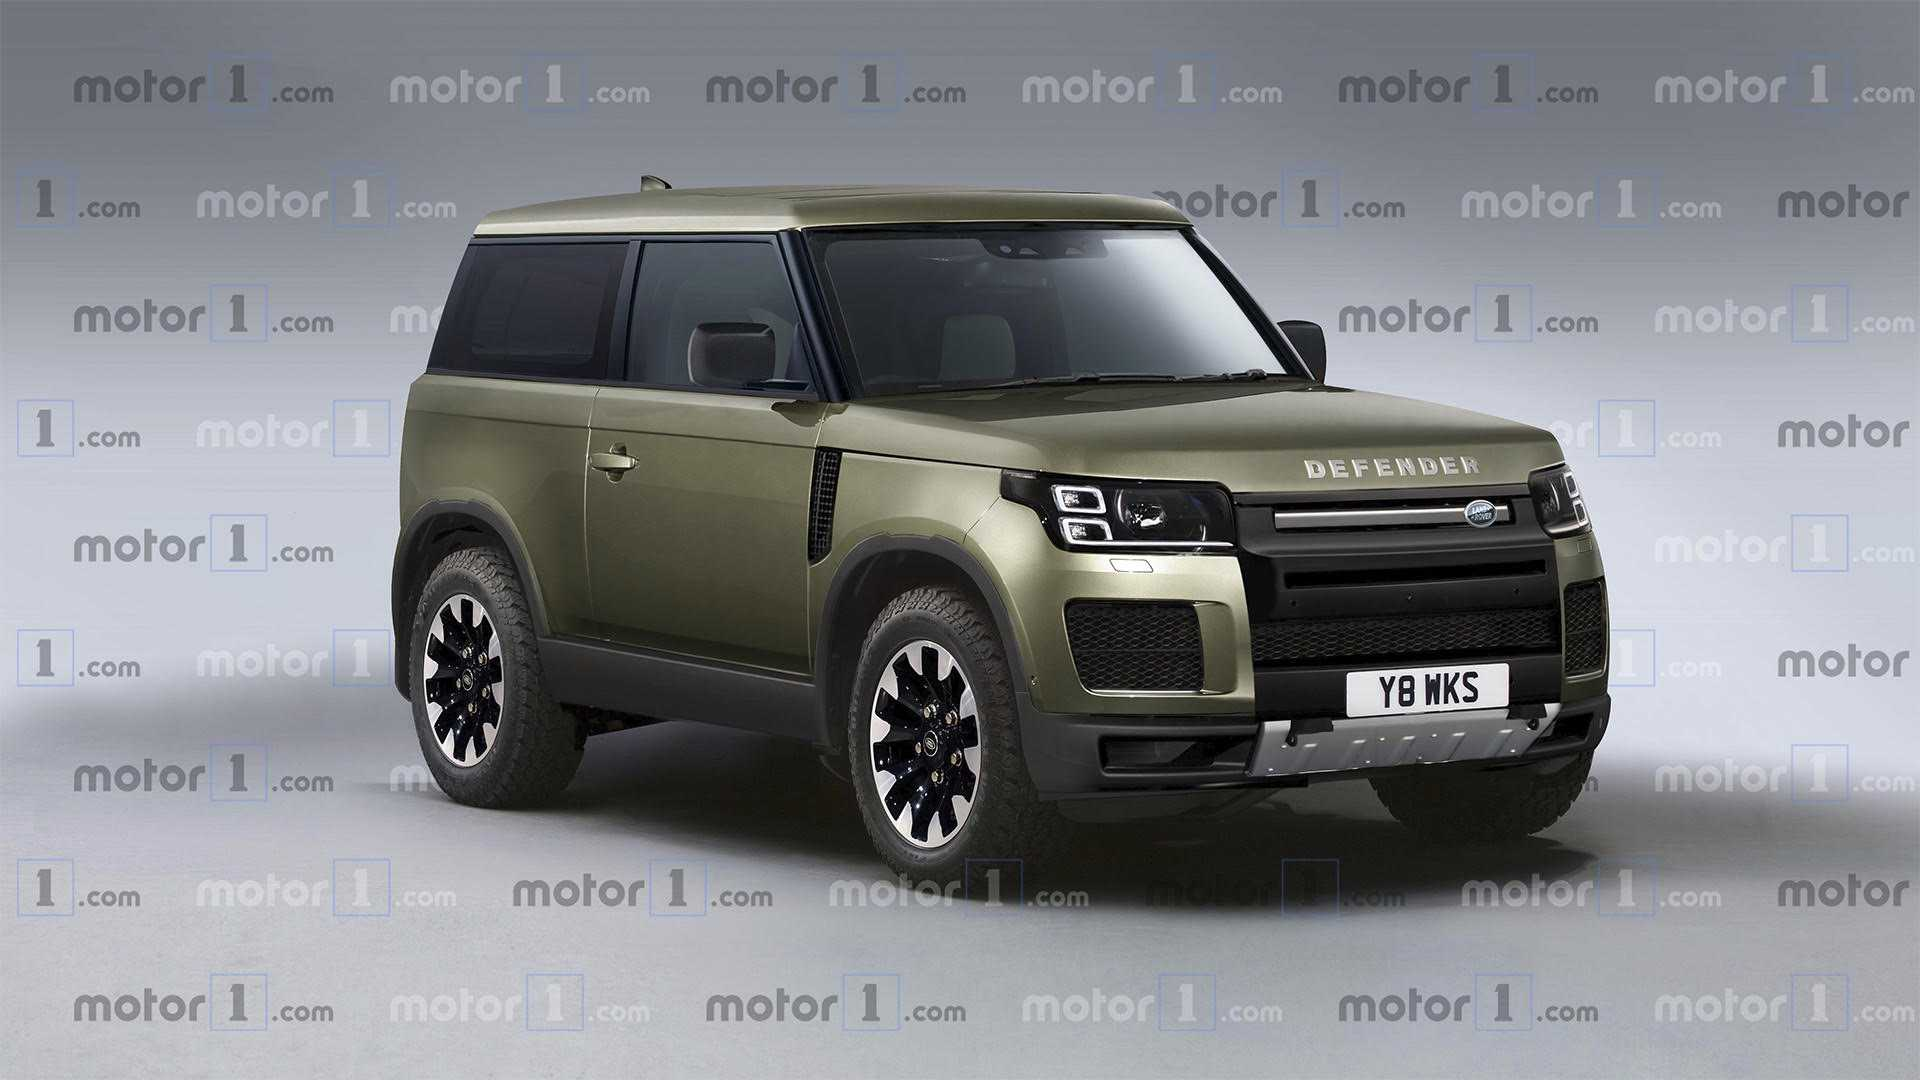 46 All New 2019 Land Rover Defender Performance and New Engine for 2019 Land Rover Defender